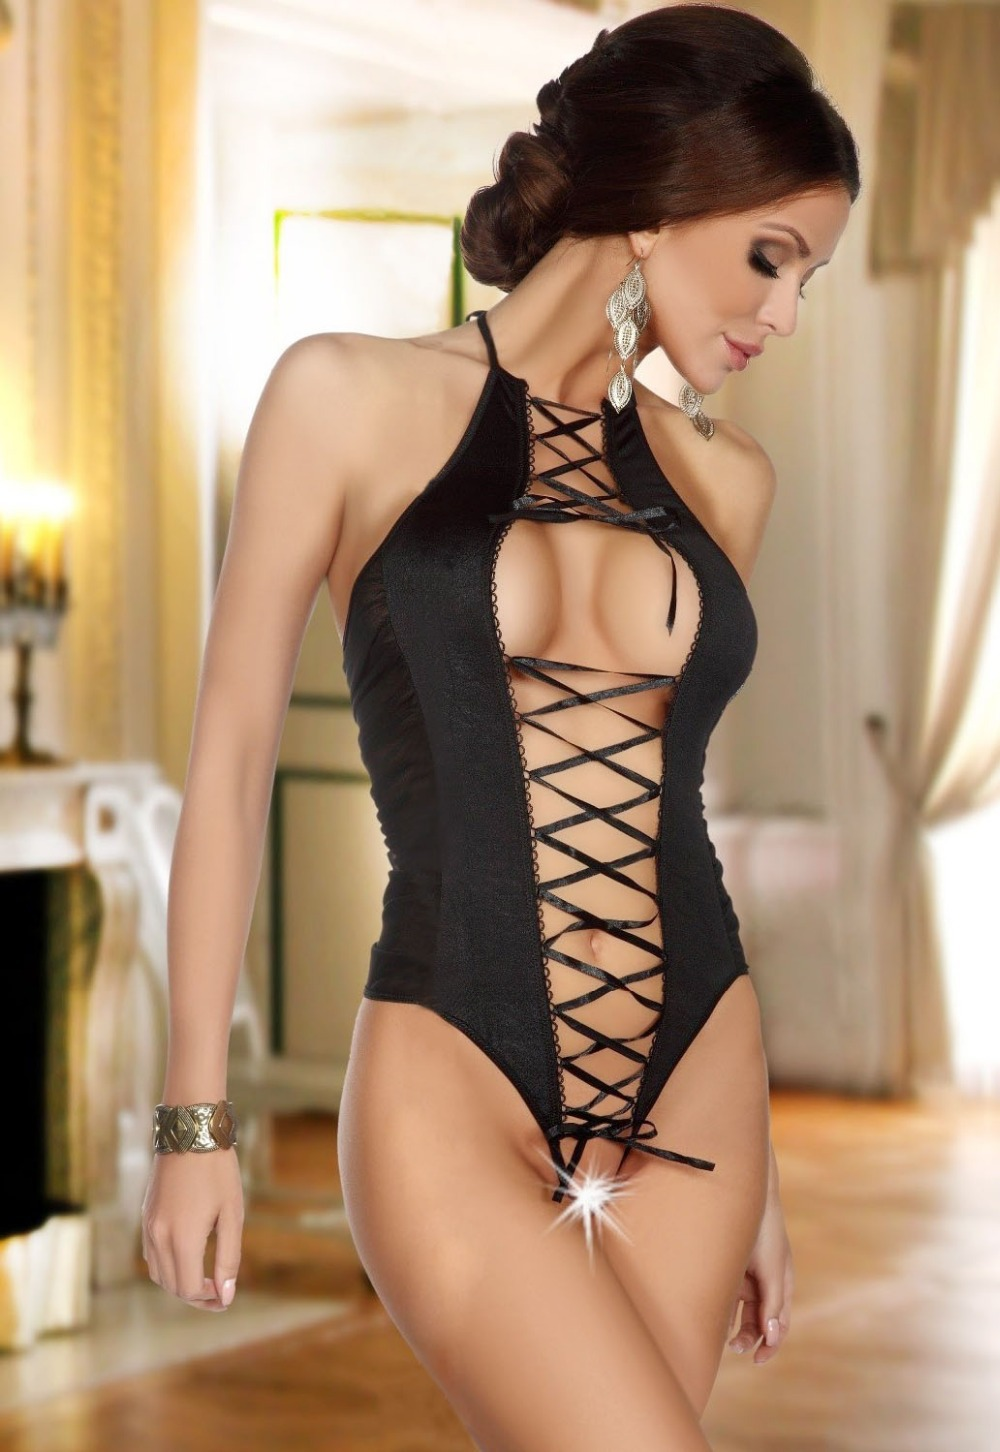 Aliexpresscom  Buy Free Shipping 2014 New Porn Lingerie Sexy Teddies Erotic Lingerie Hot Sexy Costumes,Pajamas For Women Free Shipping From -7771